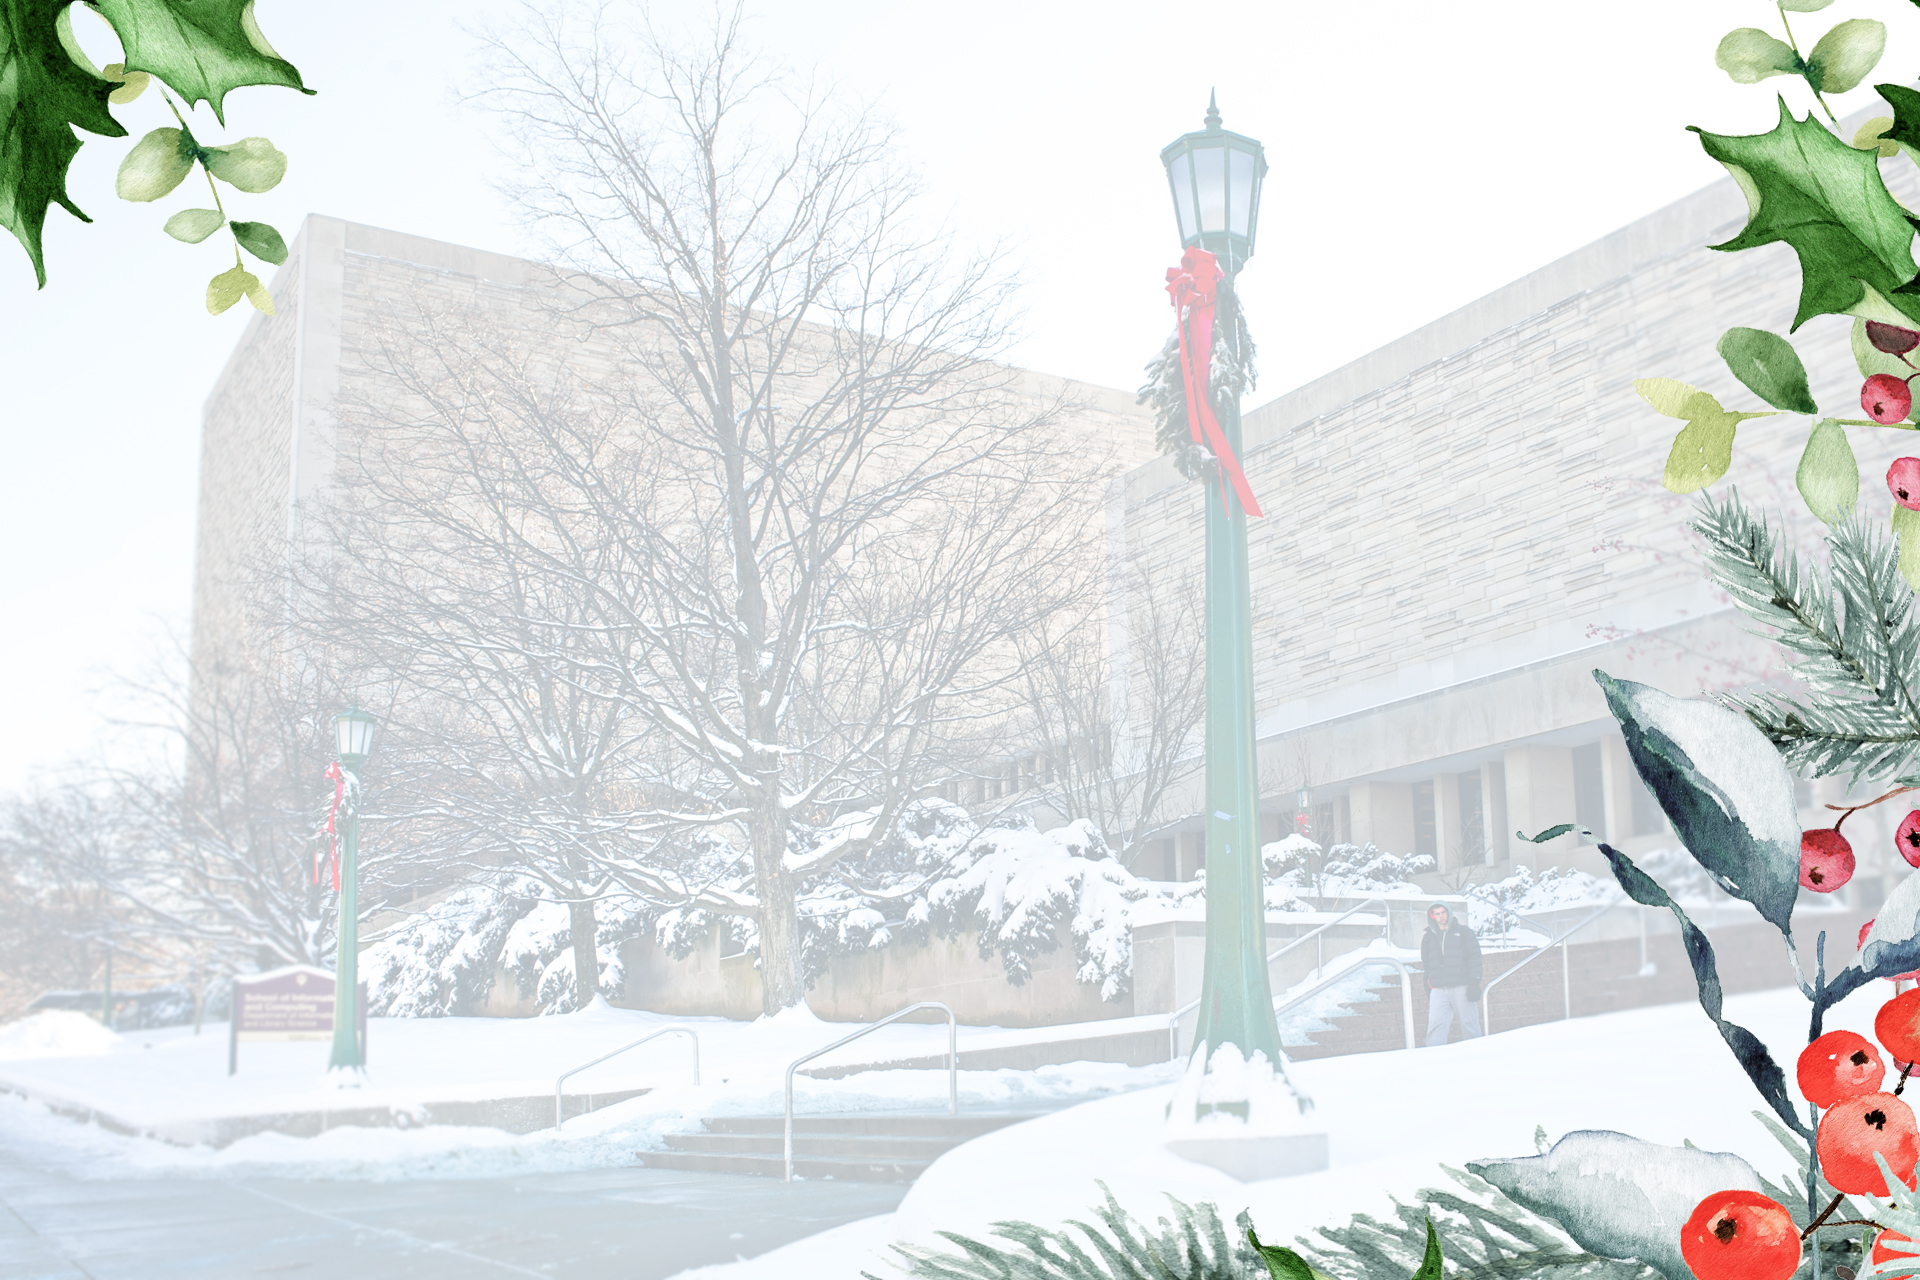 A ghosted photo of the Herman B Wells Library as it faces 10th street. A festive border is applied.